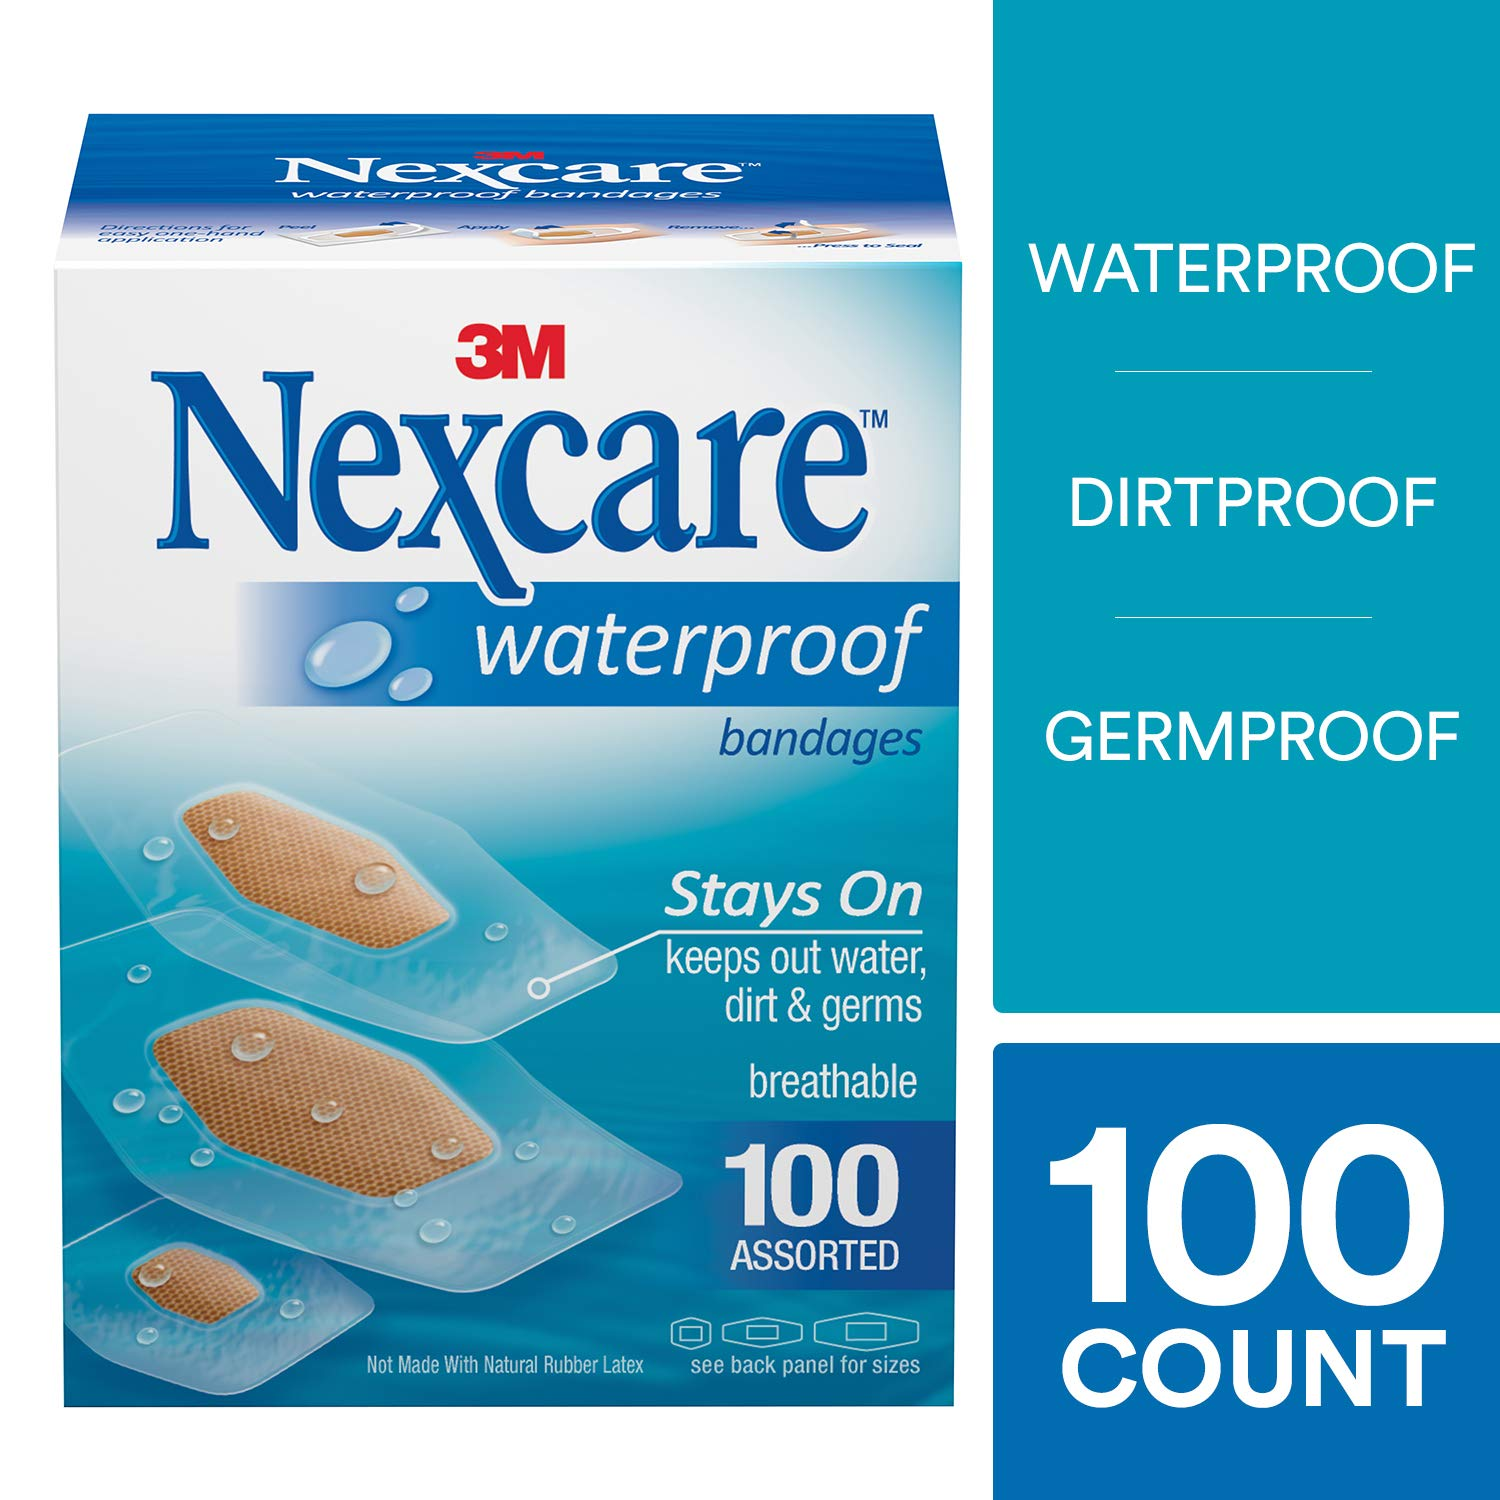 Nexcare Waterproof Clear Bandages, Stays On In Water, Breathable, Protects Cuts, Scrapes, and Blisters, Assorted Sizes, 100 Count